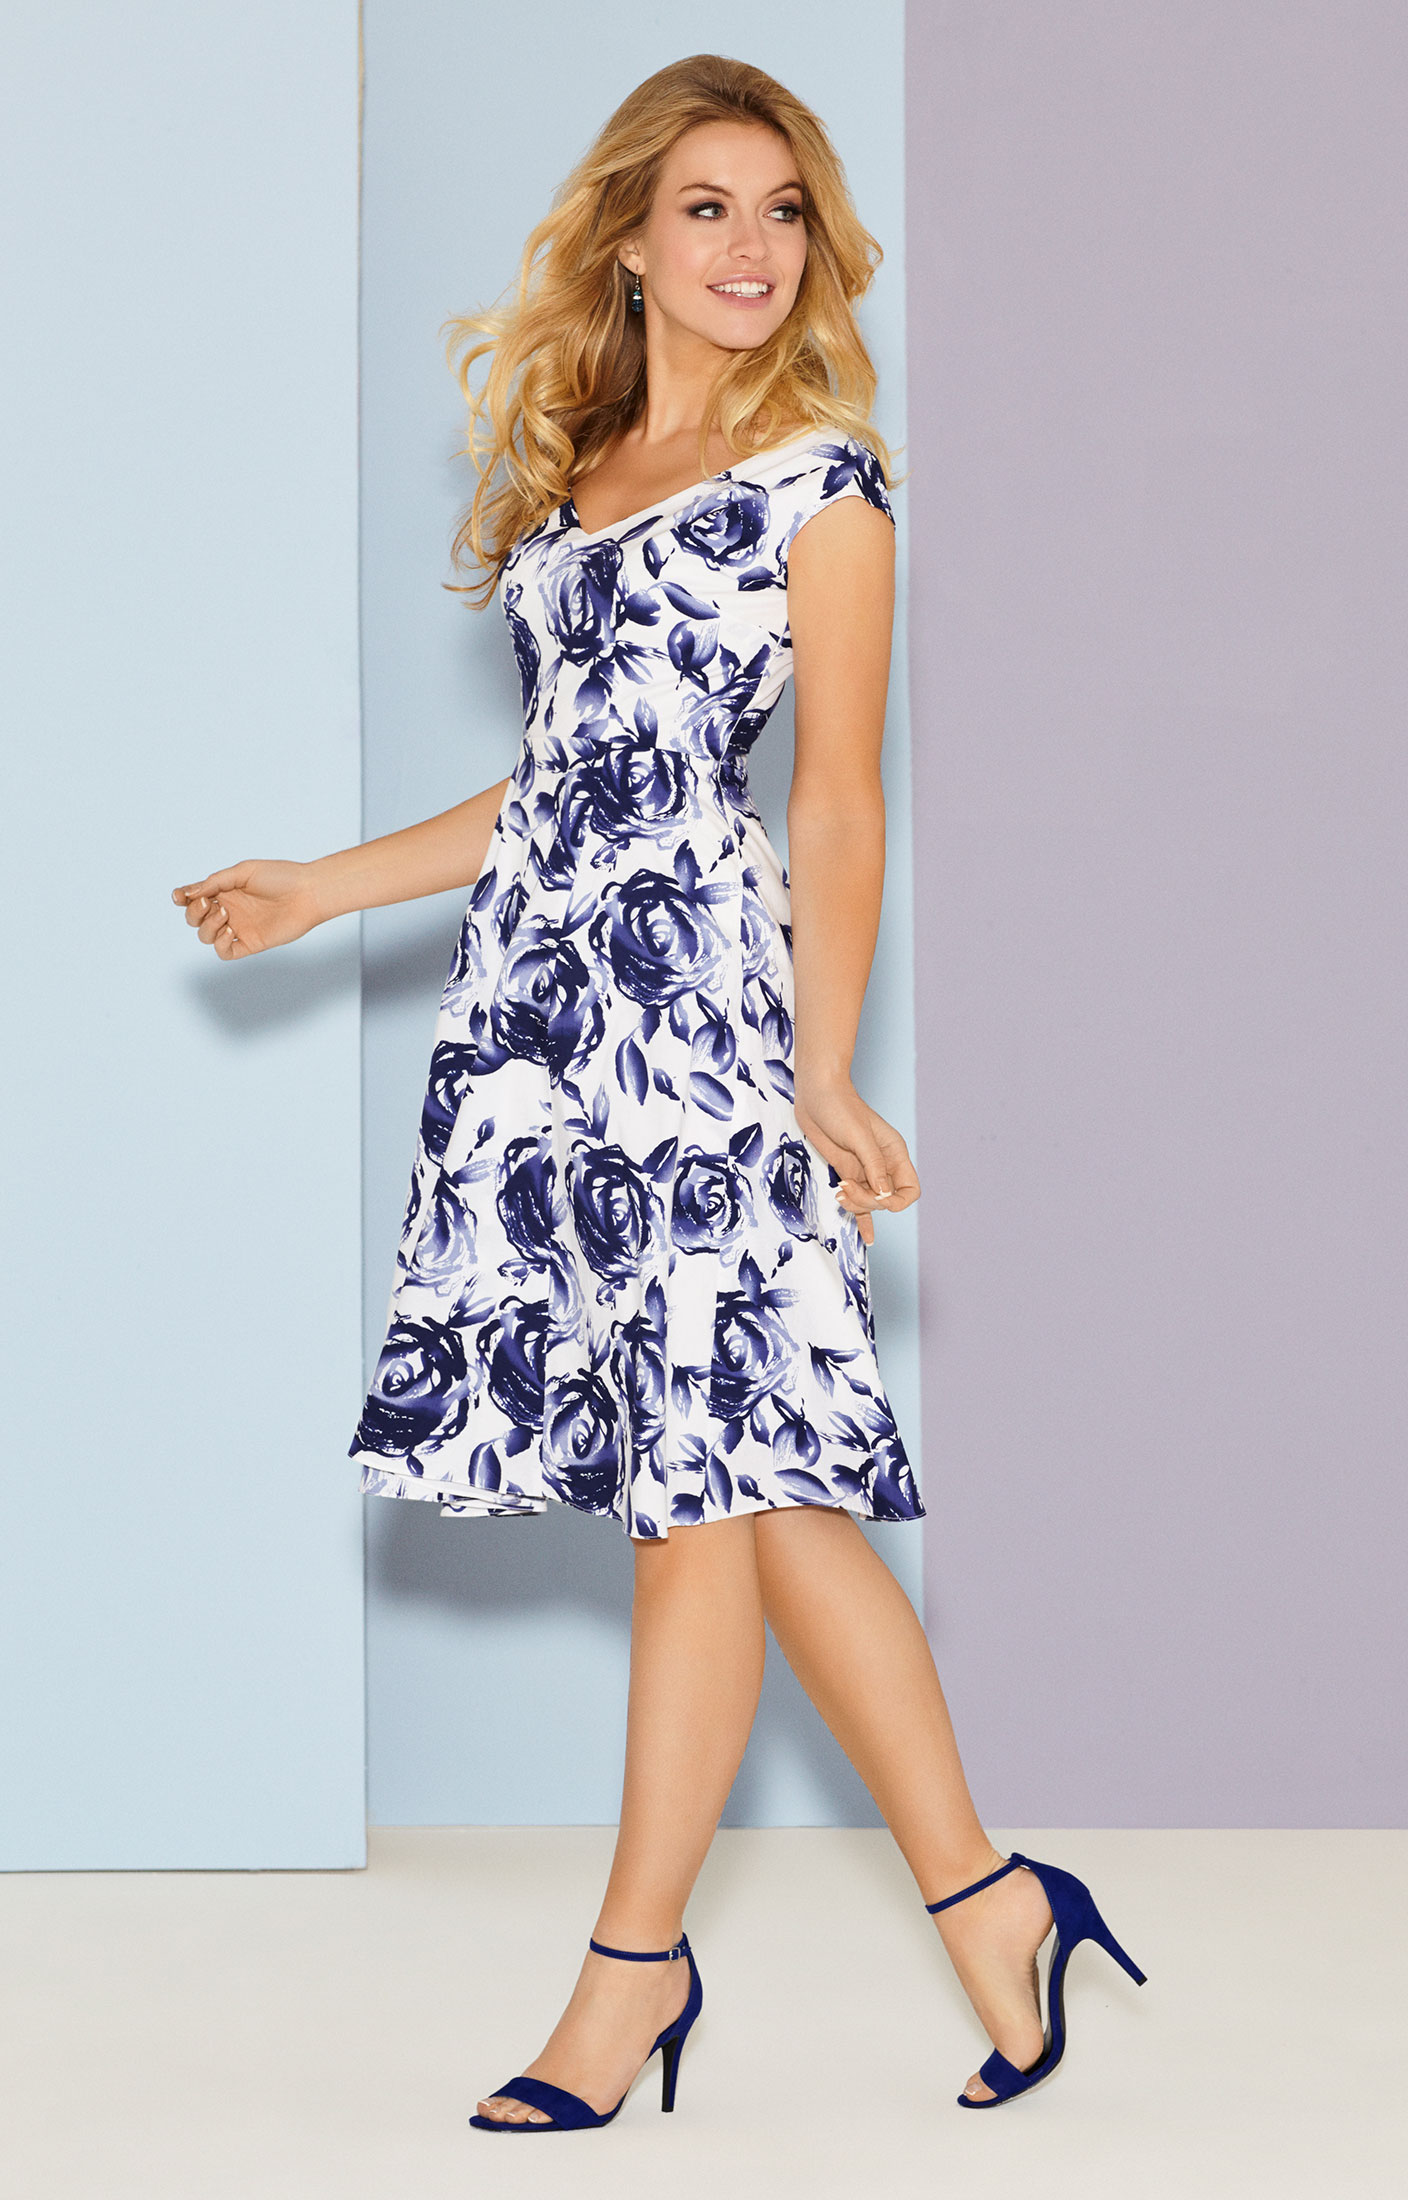 034c65277e34 Fleur Swing Dress Short Ink Blue - Evening Dresses, Occasion Wear and  Wedding Dresses by Alie Street.